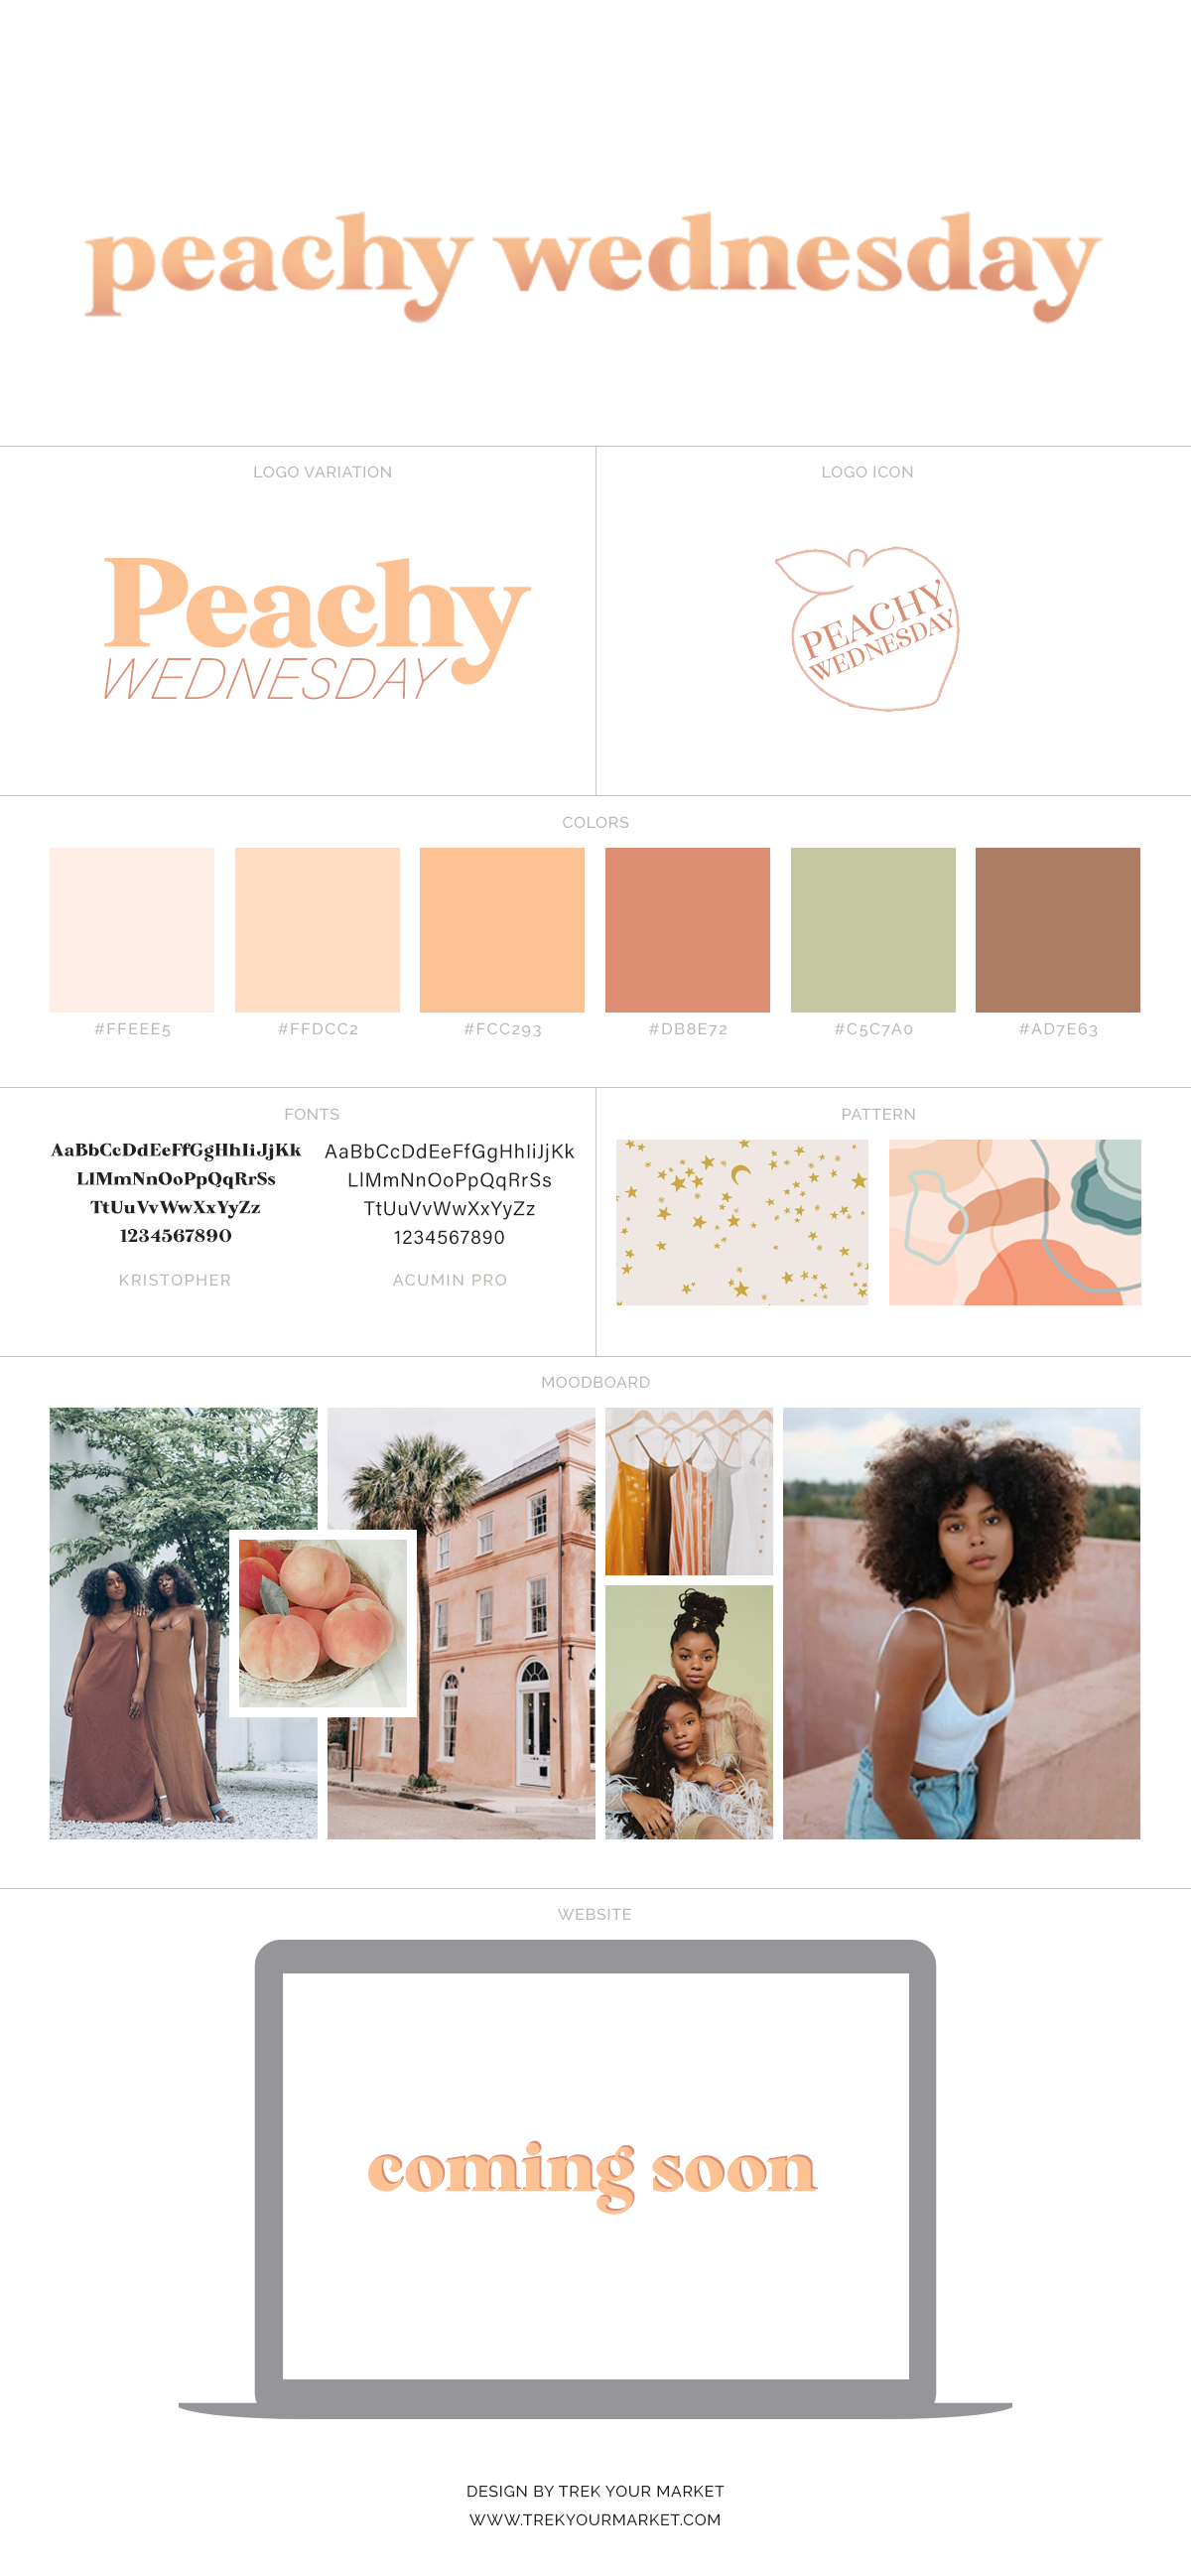 Peachy Wednesday Branding Guide.png